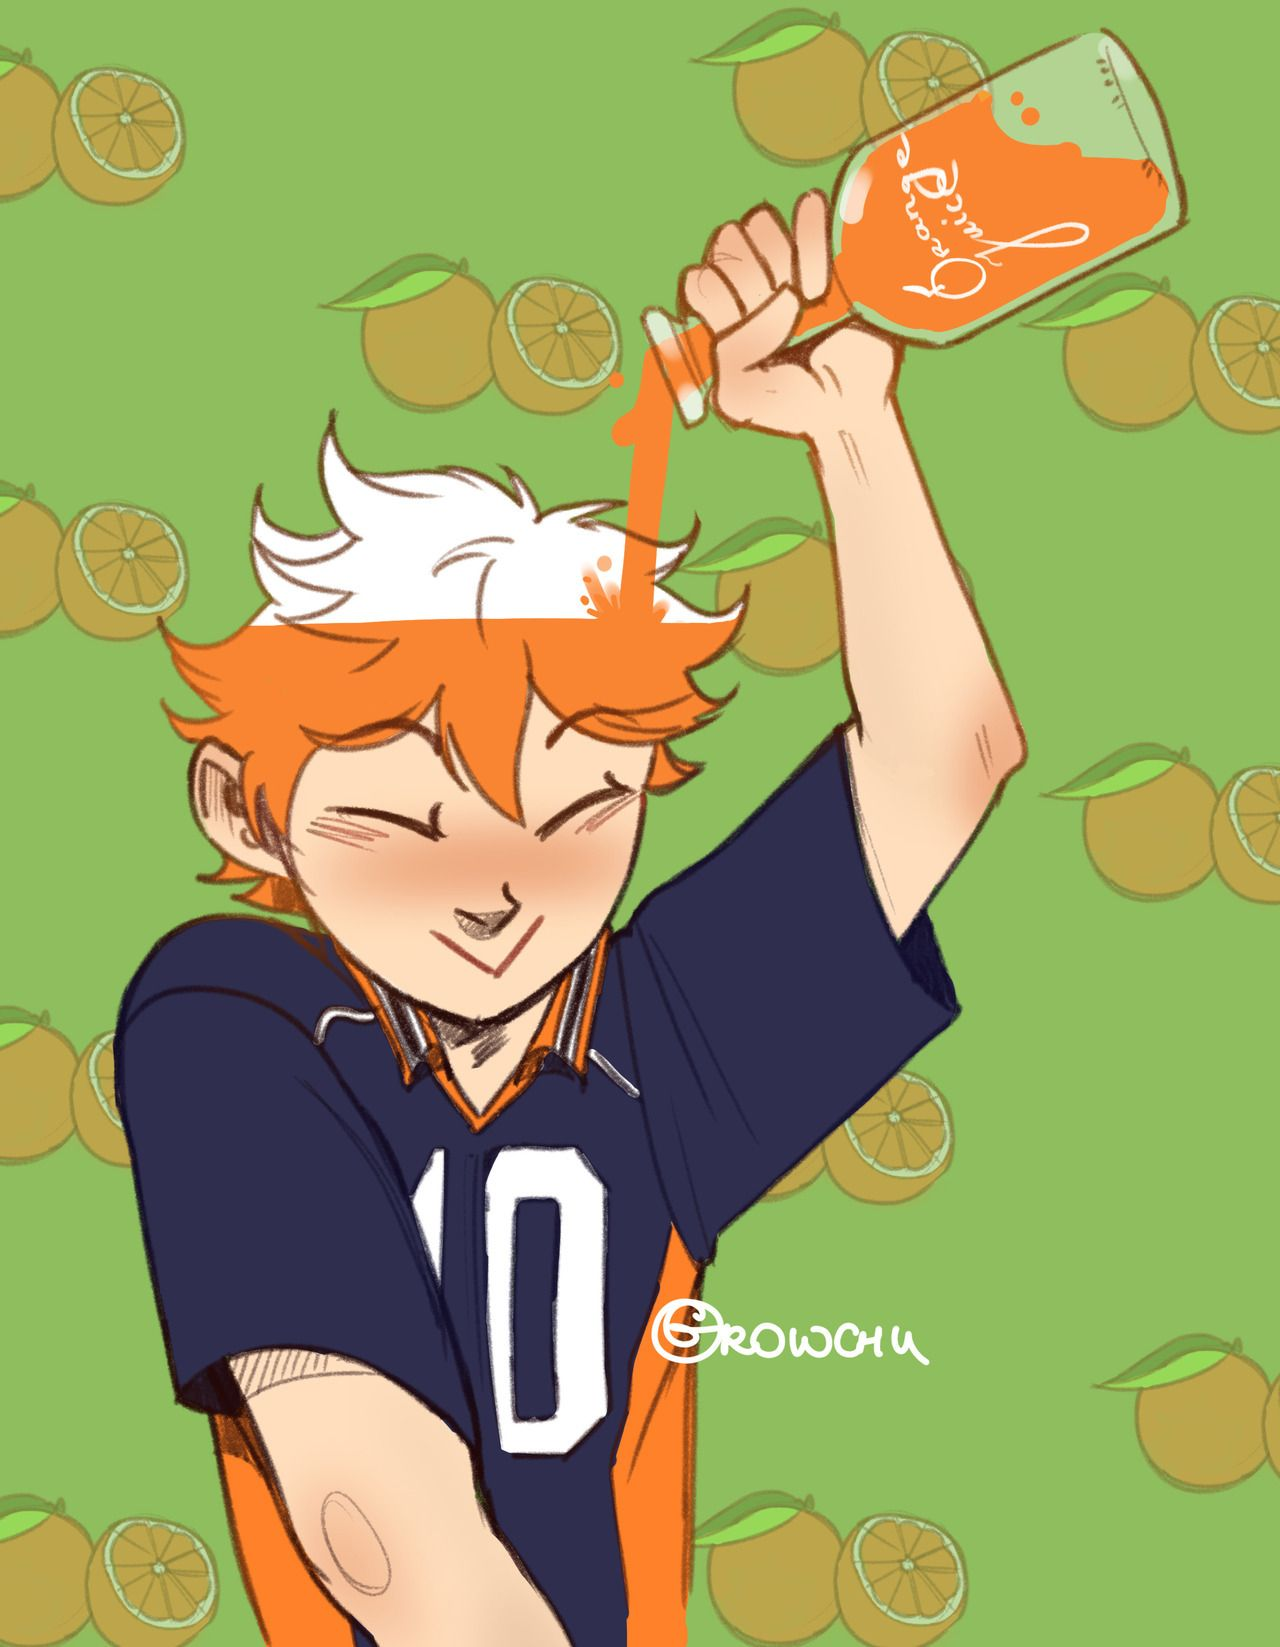 Top Secret Formula For Orange Hair Only For Shrimps Instagram Growchu01 Haikyuu Haikyuu Anime Haikyuu Funny